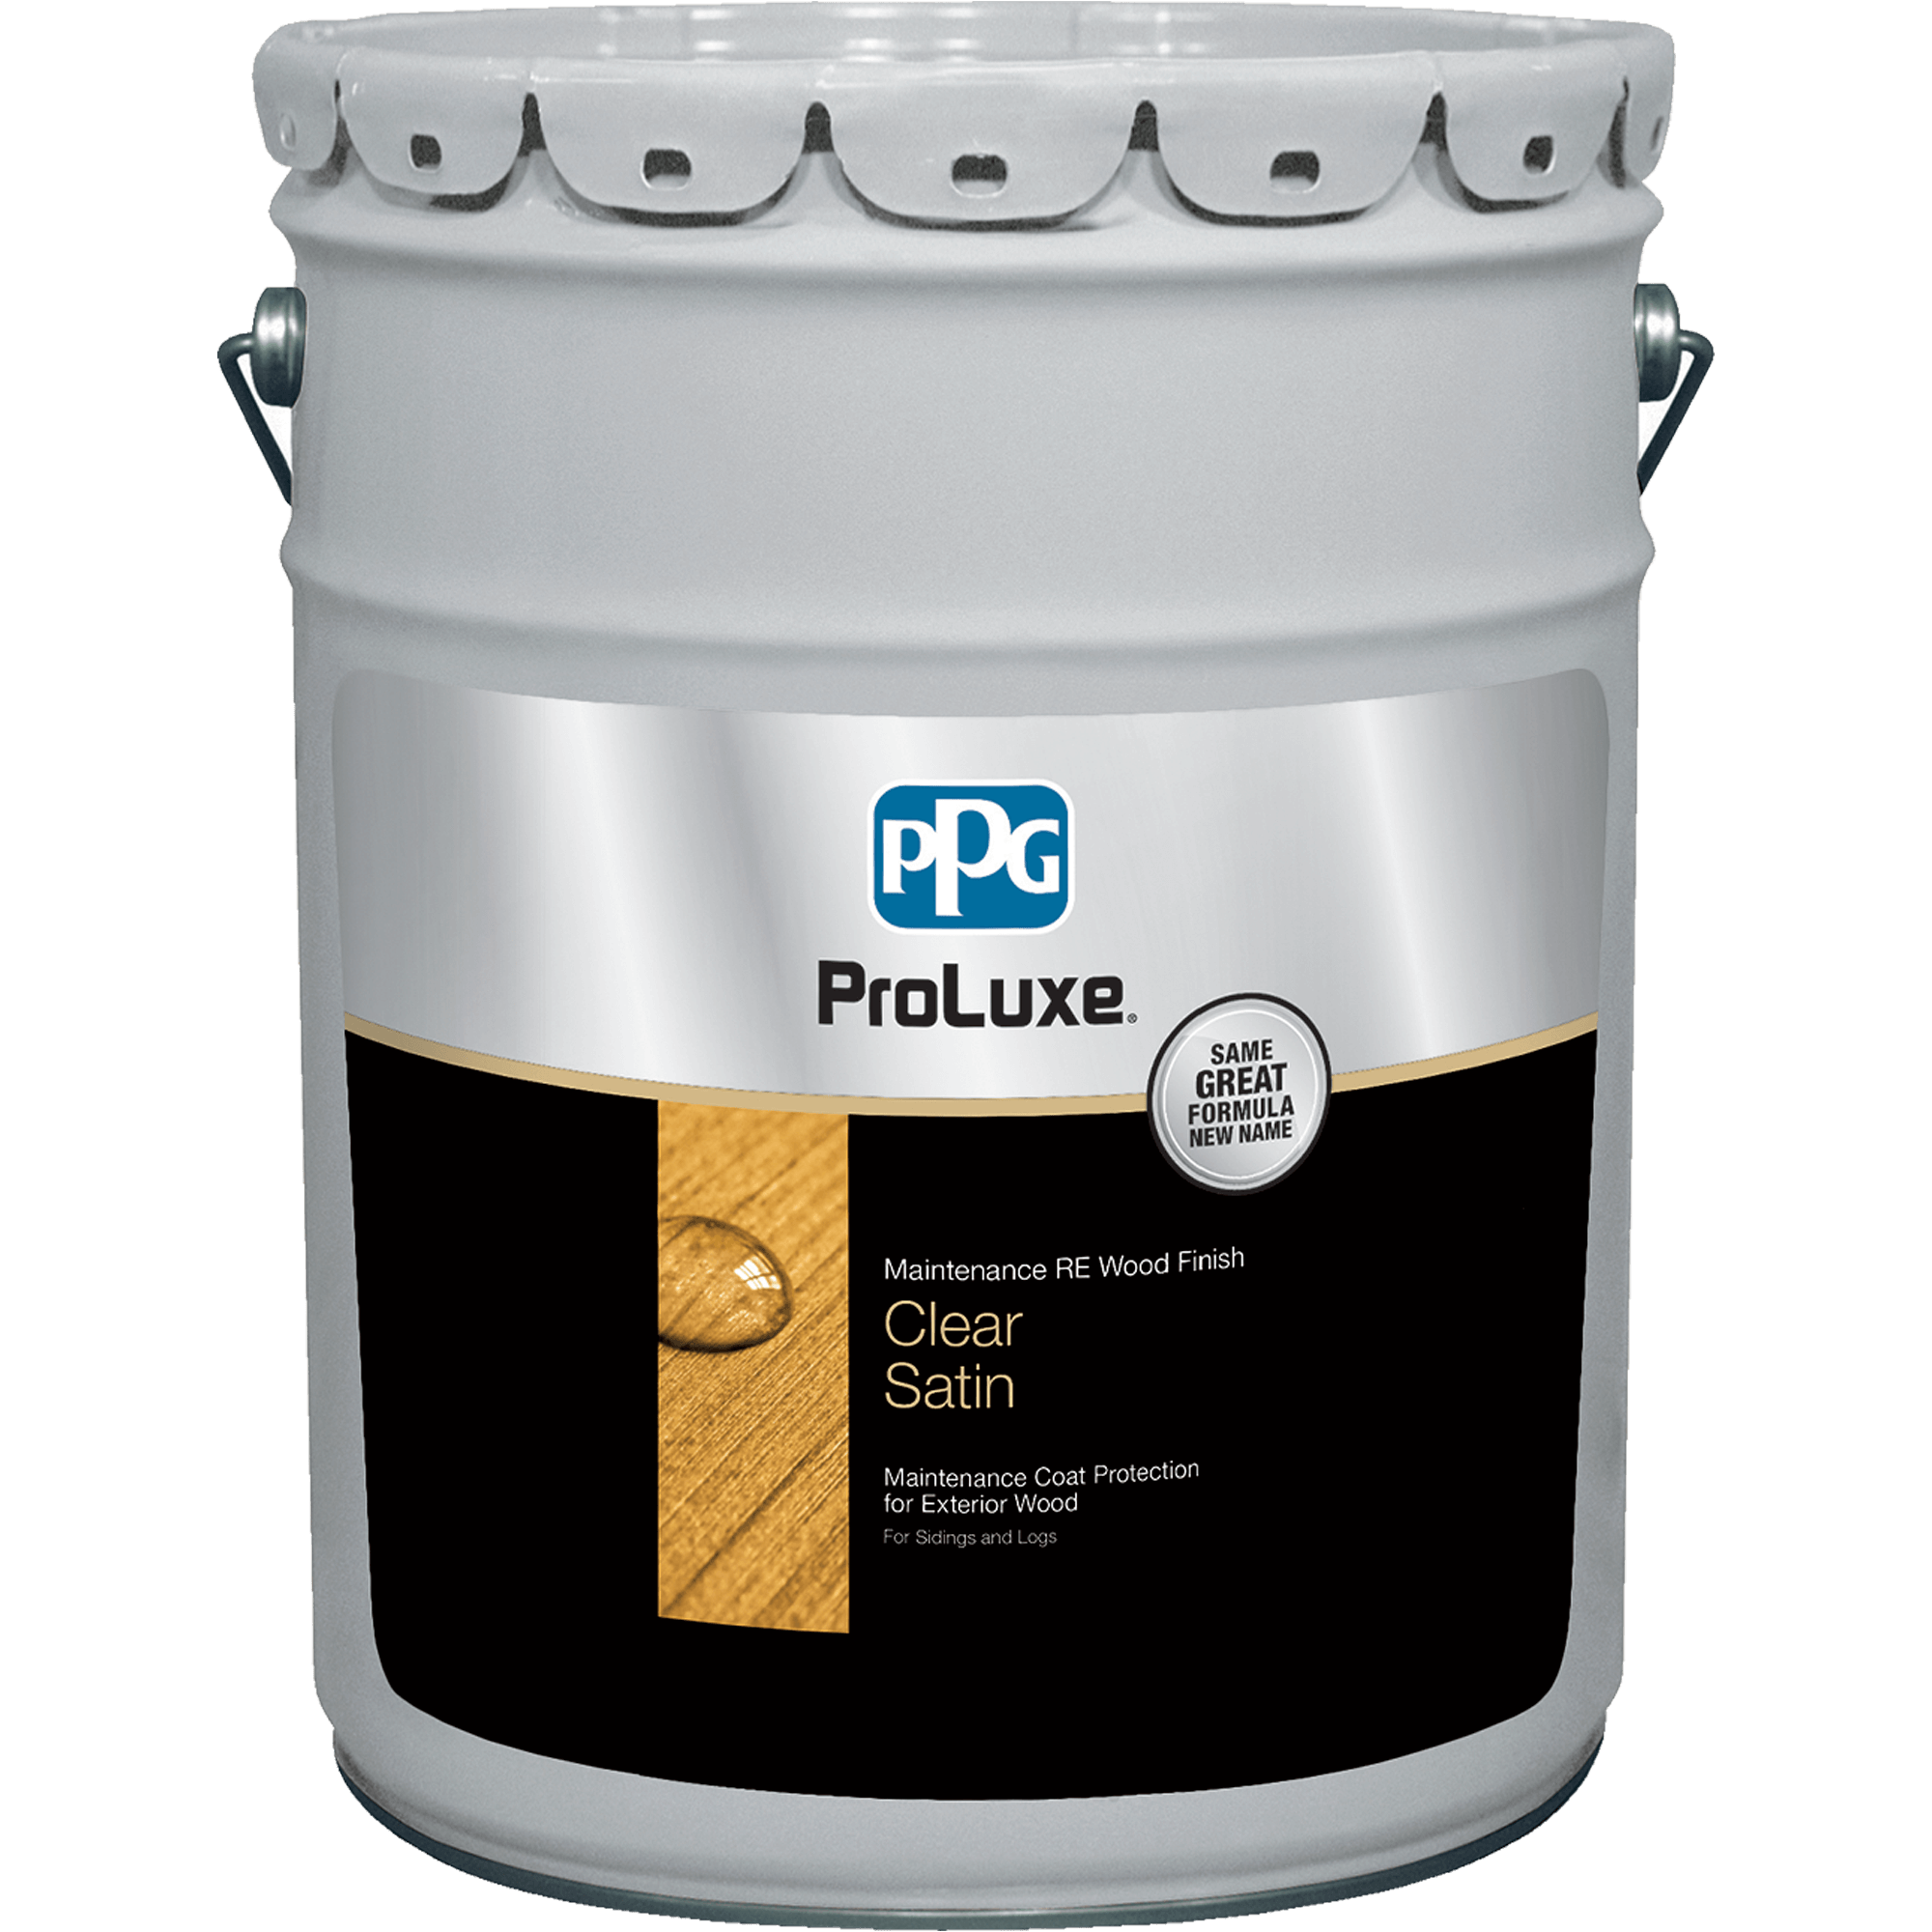 PROLUXE<sup>®</sup> Maintenance RE Wood Finish 5 gallon